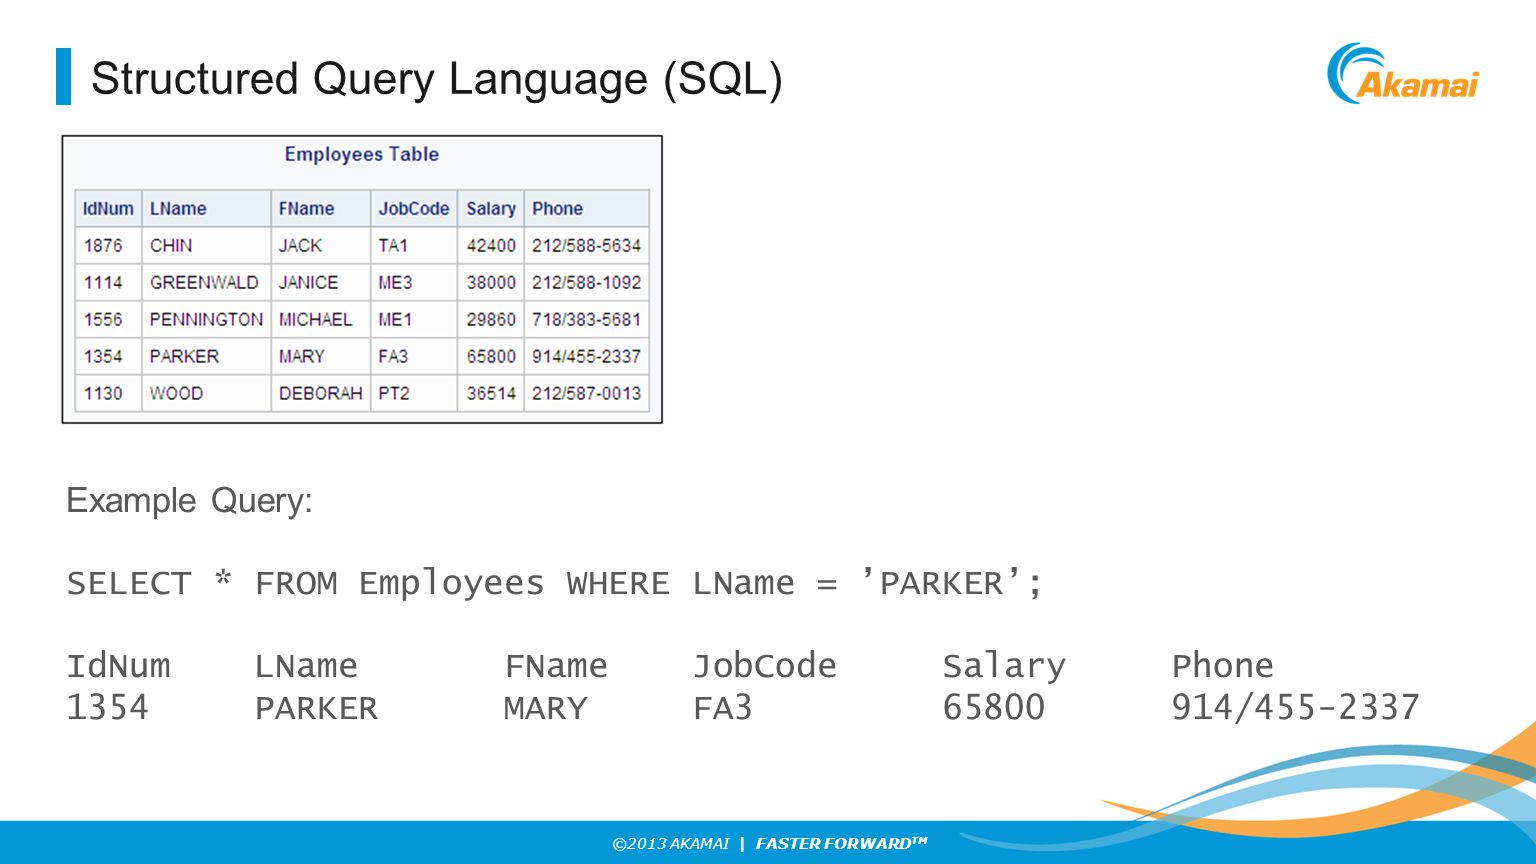 ©2013 AKAMAI | FASTER FORWARD TM Structured Query Language (SQL) Example Query: SELECT * FROM Employees WHERE LName = 'PARKER'; IdNum LName FName JobCode Salary Phone 1354 PARKER MARY FA3 65800 914/455-2337